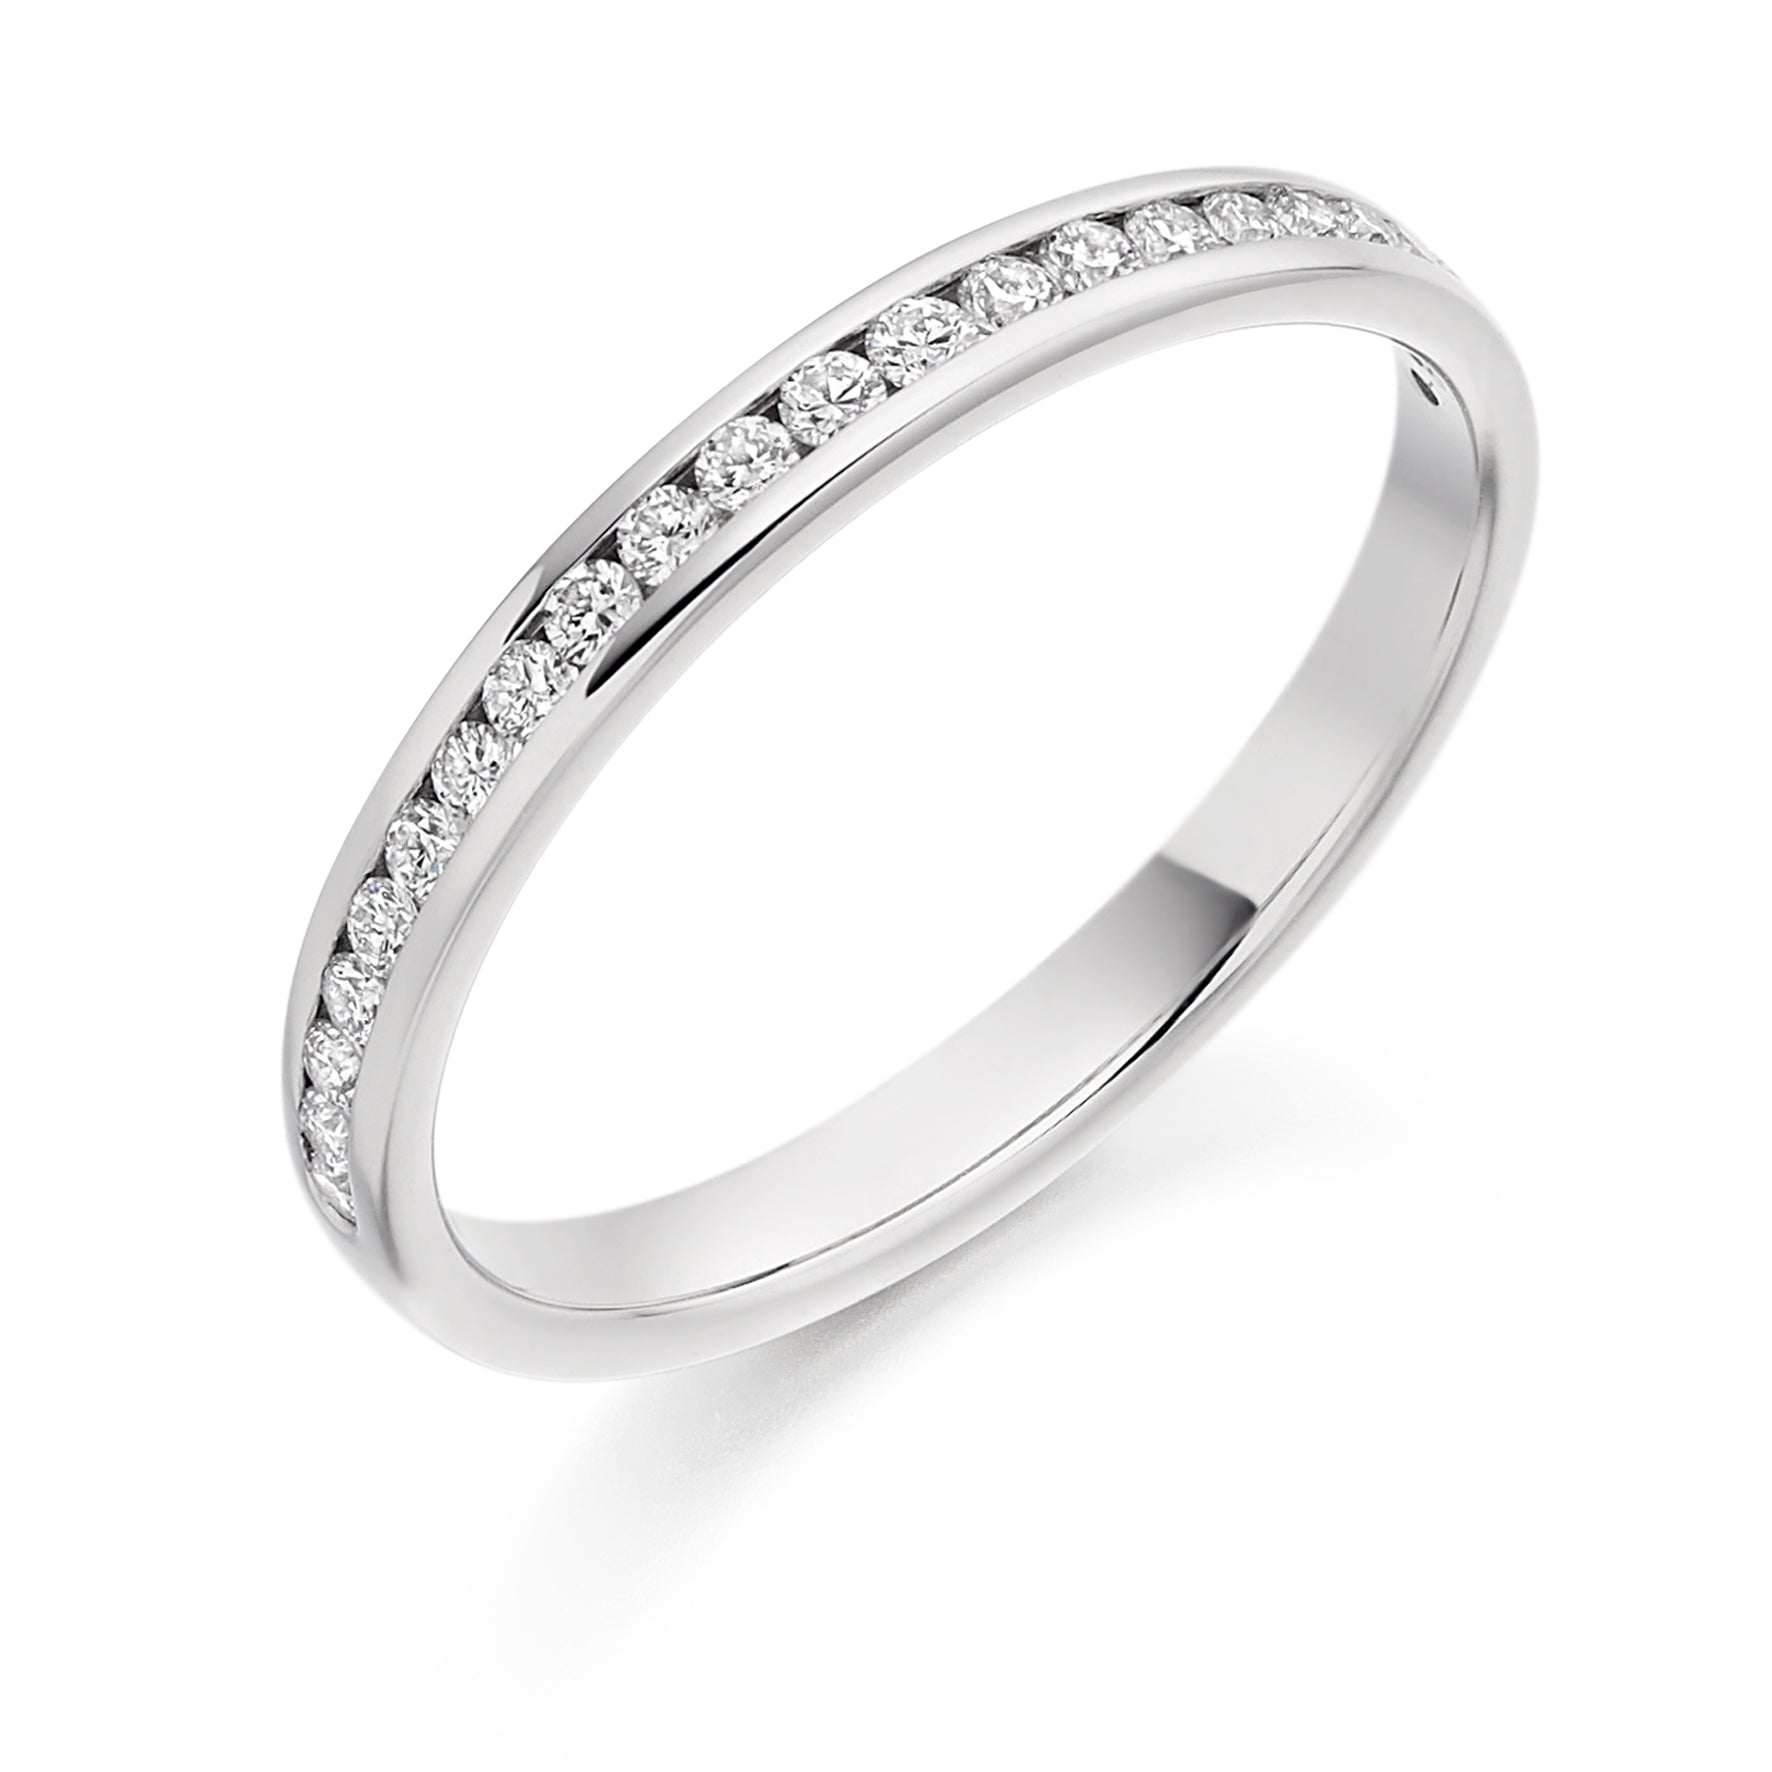 0.25ct Round Brilliant Cut Diamonds Channel Set Wedding Ring - (Home Try-On)